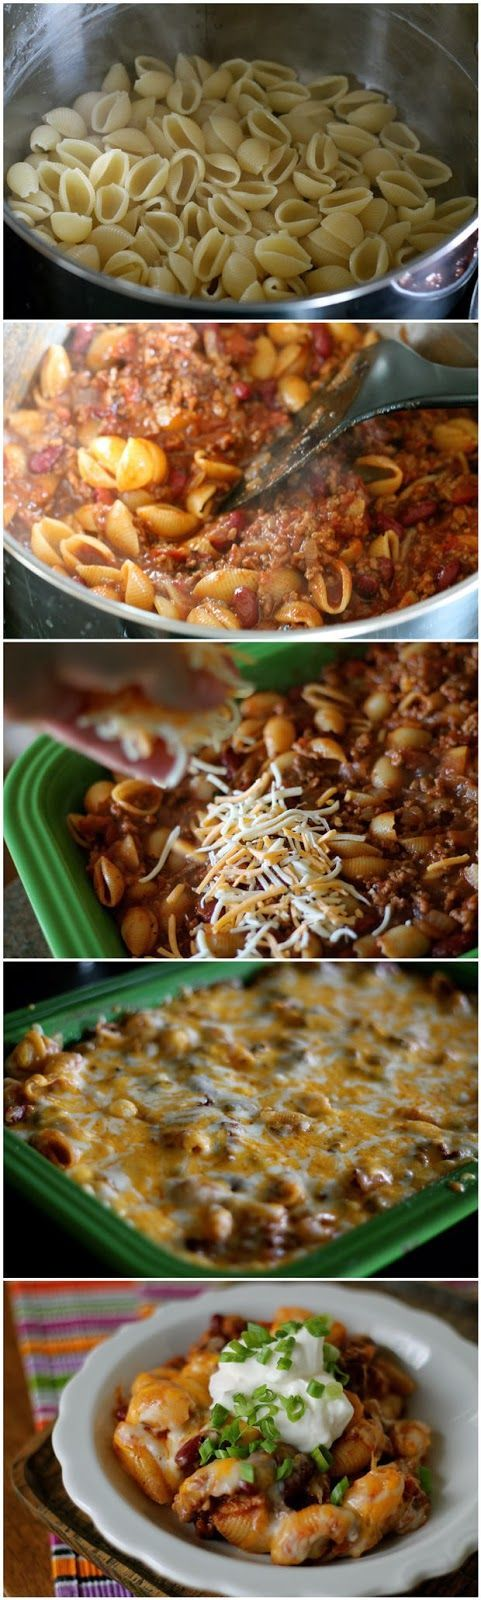 Chili Pasta Bake: making the healthy version with whole wheat pasta, fat free sharp cheddar and vegetarian ground beef substitute....yum